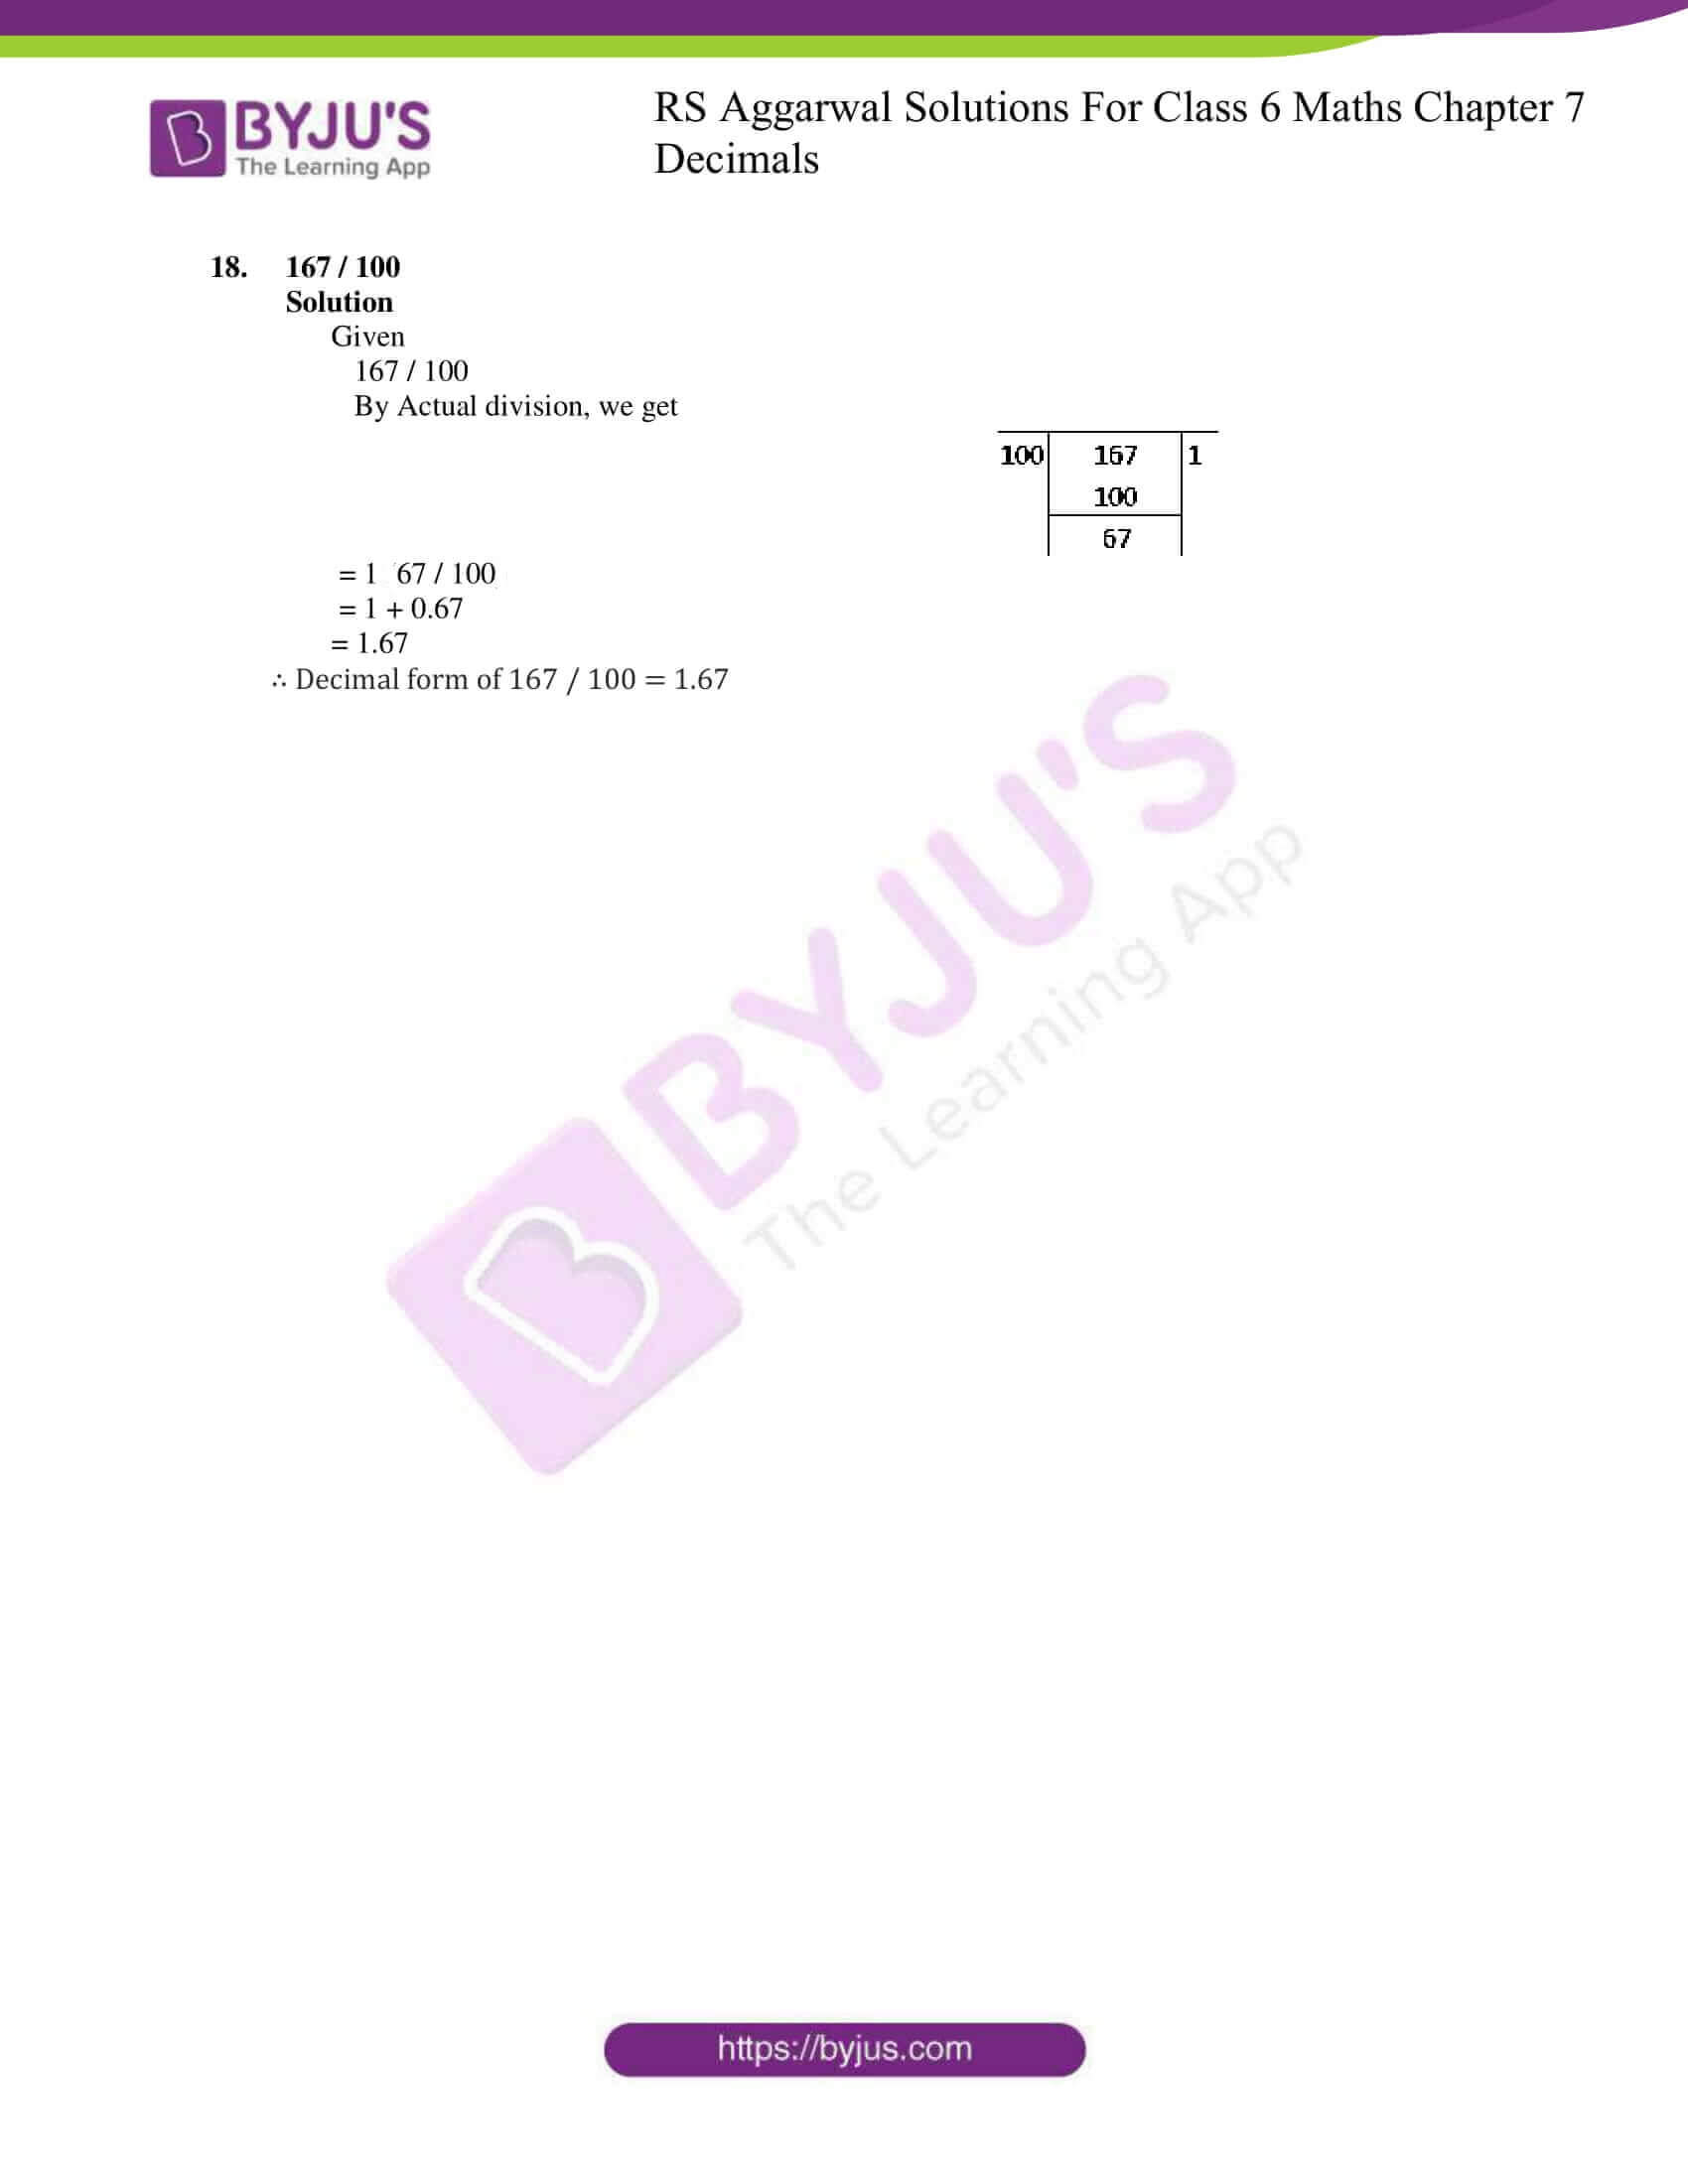 rs aggarwal solutions for class 6 maths chapter 7 deci ex b 5